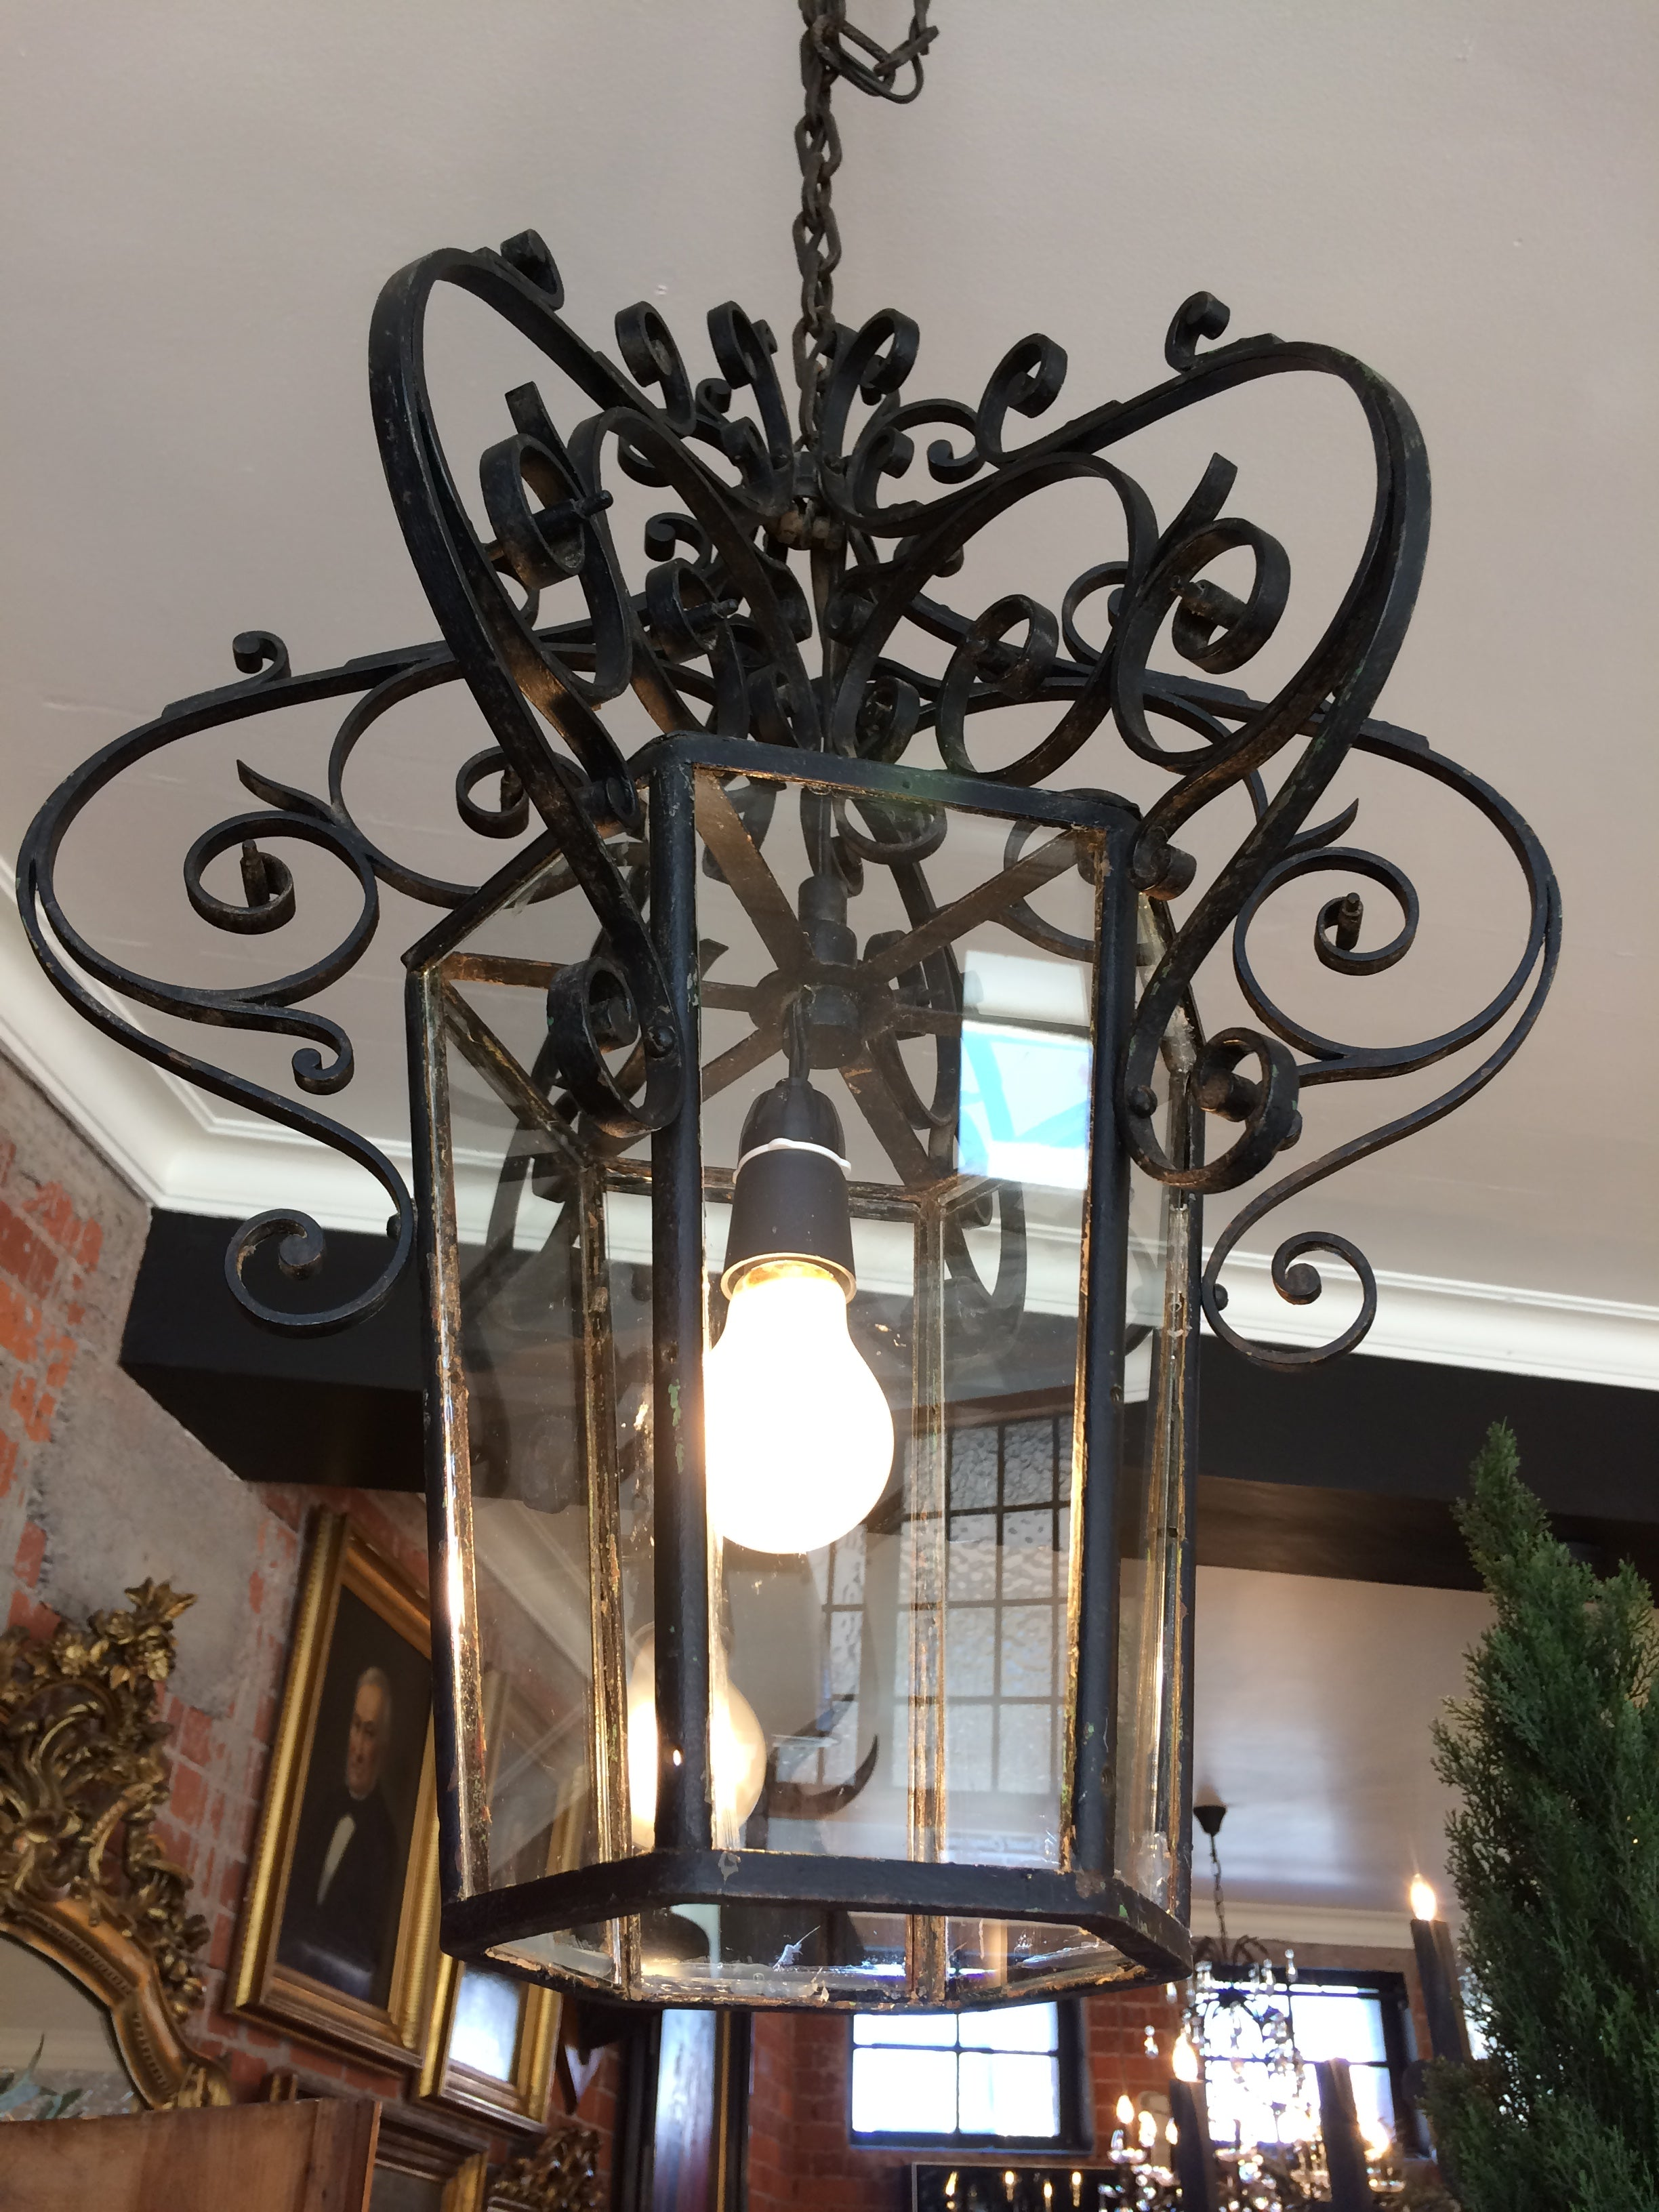 19th Century Wrought Iron Light